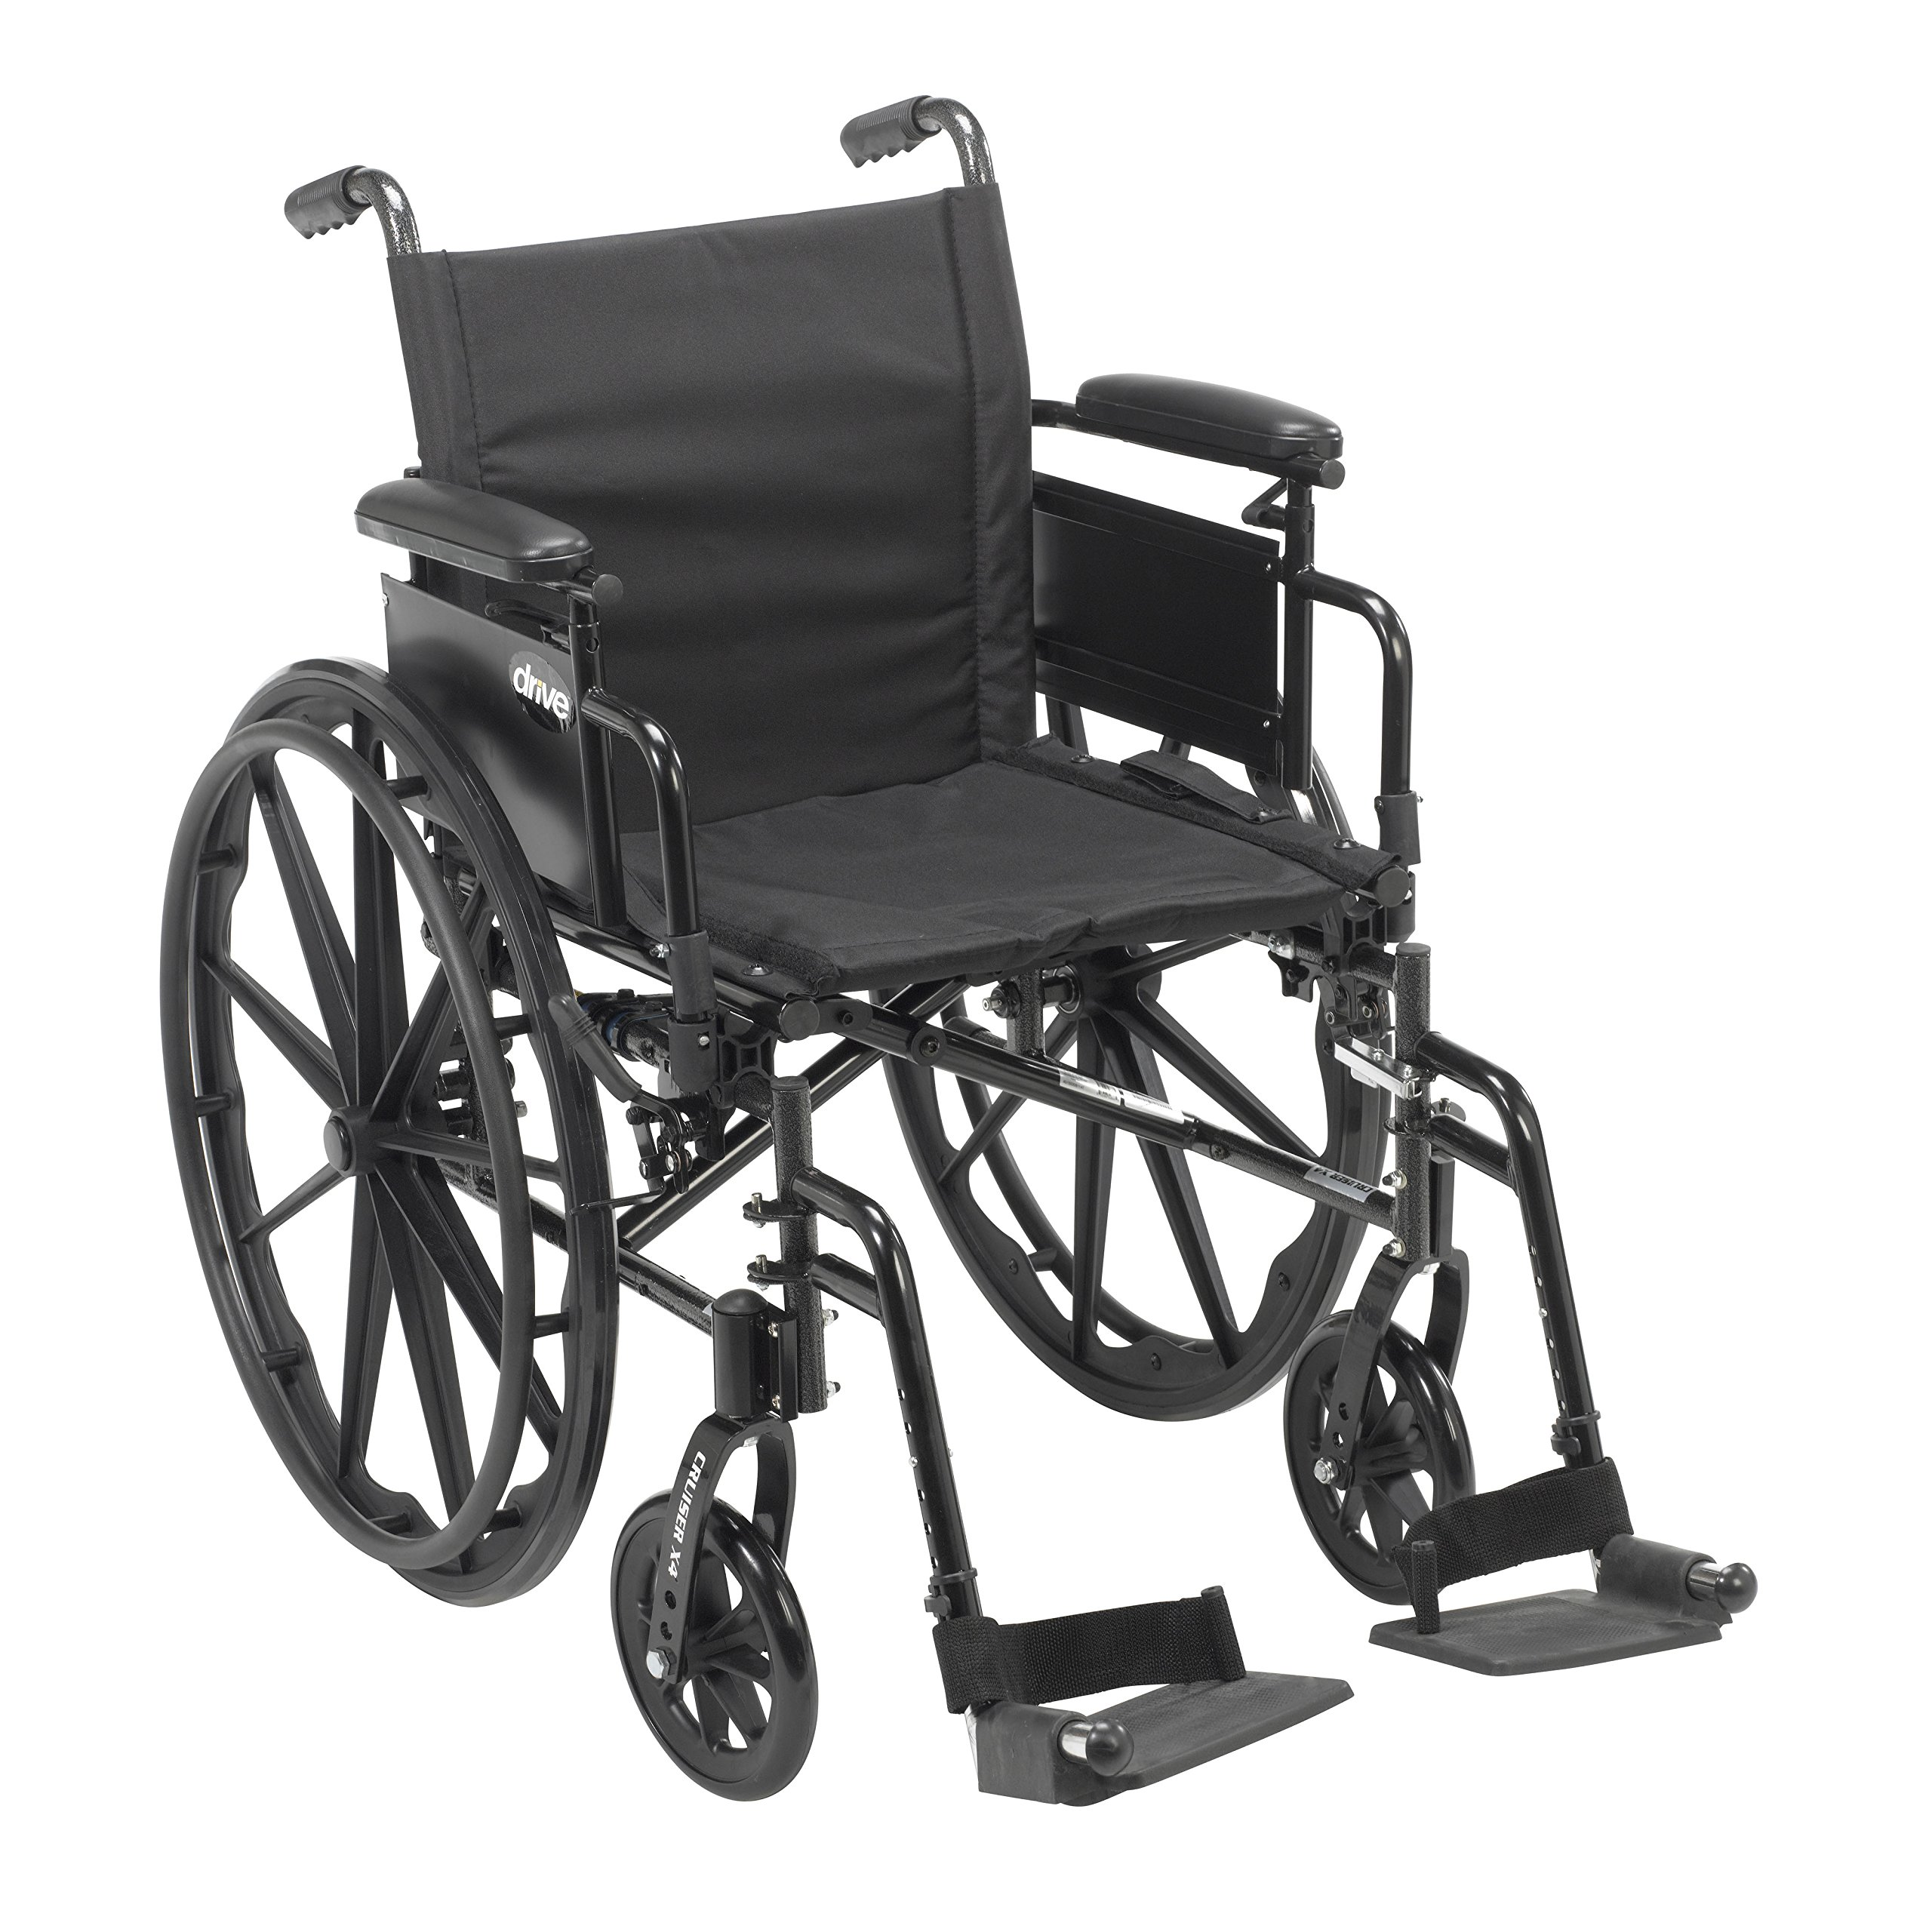 Drive Medical Cruiser X4 Lightweight Dual Axle Wheelchair with Adjustable Detachable Arms, Desk Arms, Swing Away Footrests, 18'' Seat